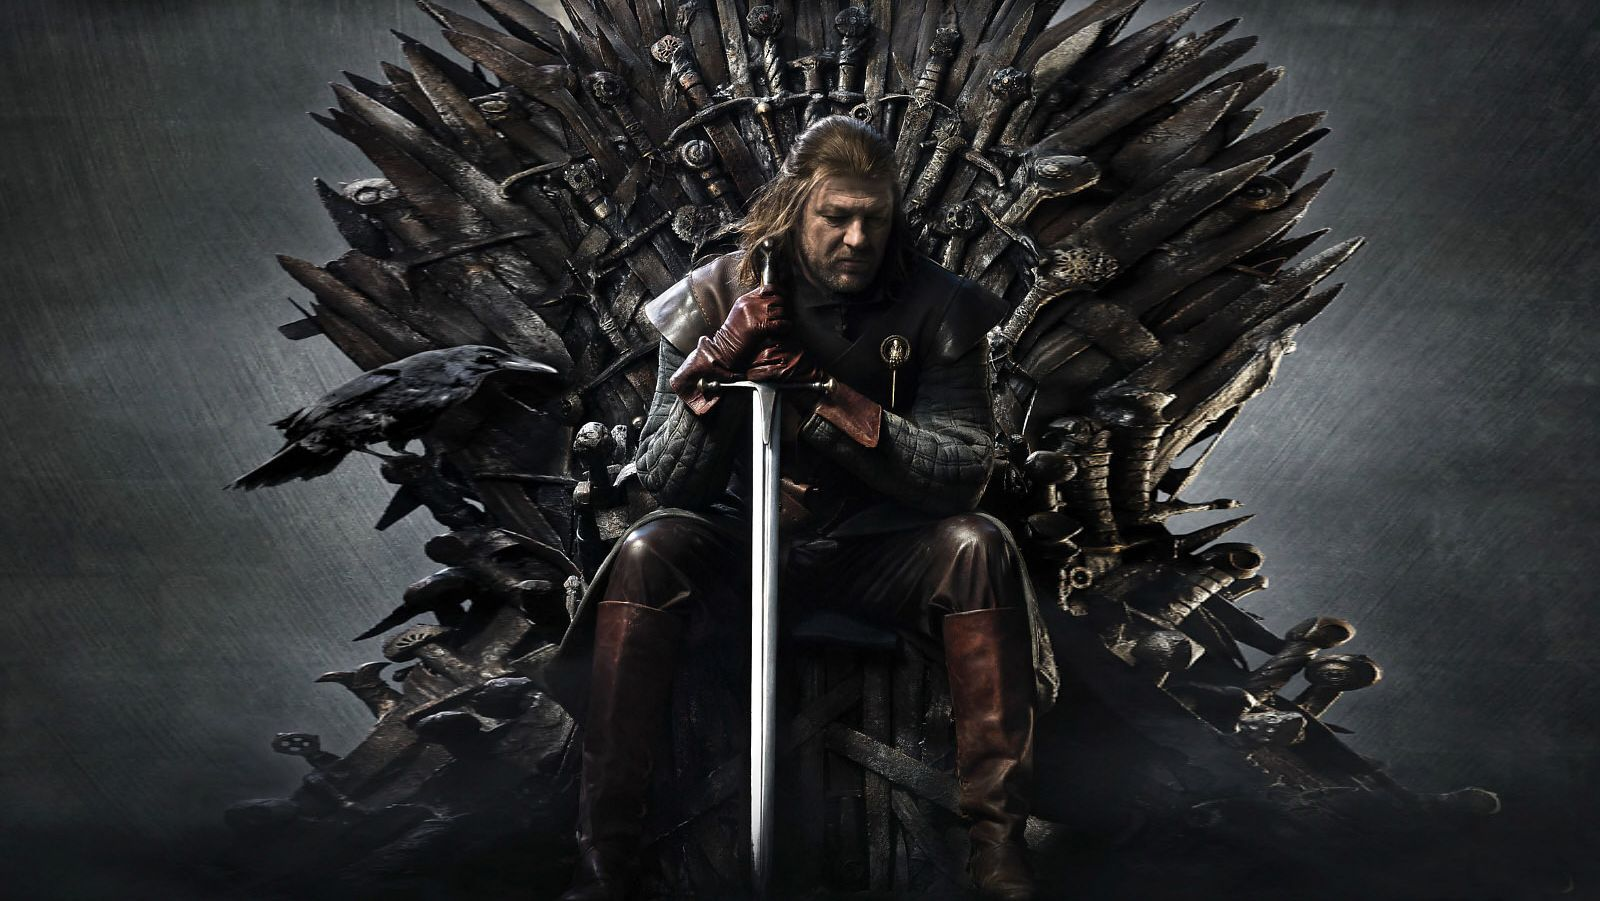 Eddard Stark sitting on the Iron Throne